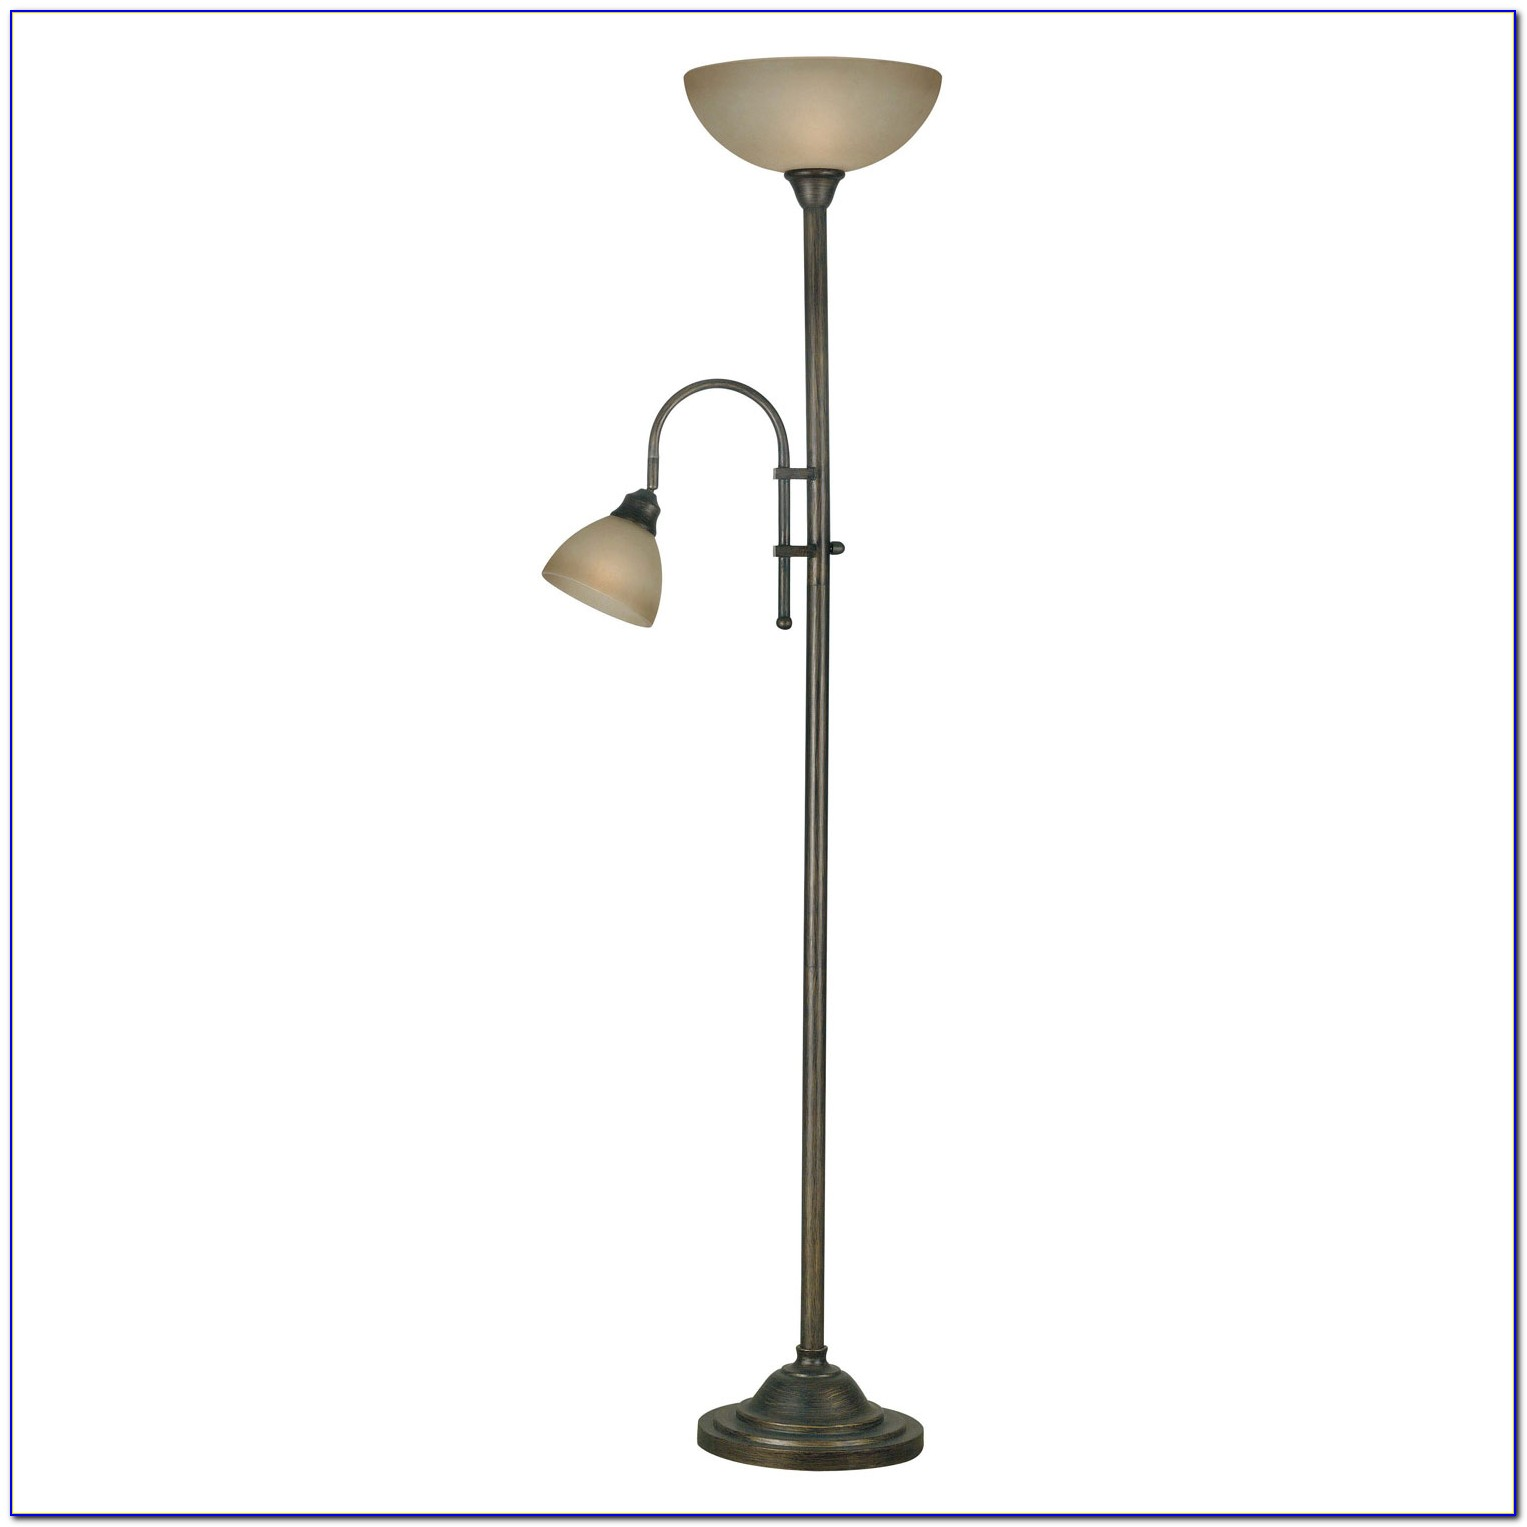 Bronze Torchiere Floor Lamp With Reading Light